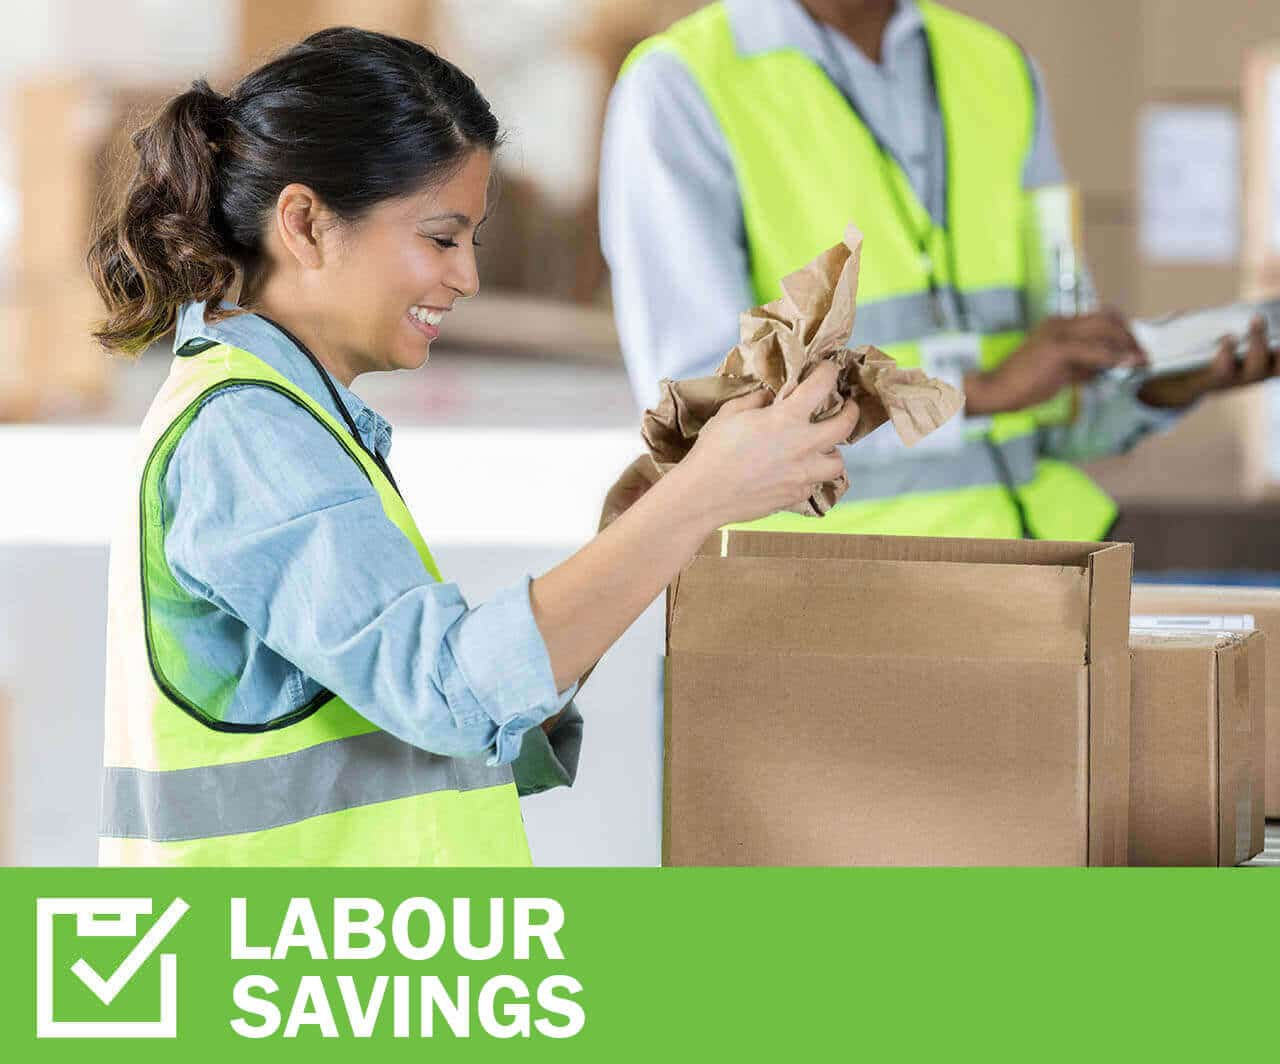 LABOUR SAVINGS